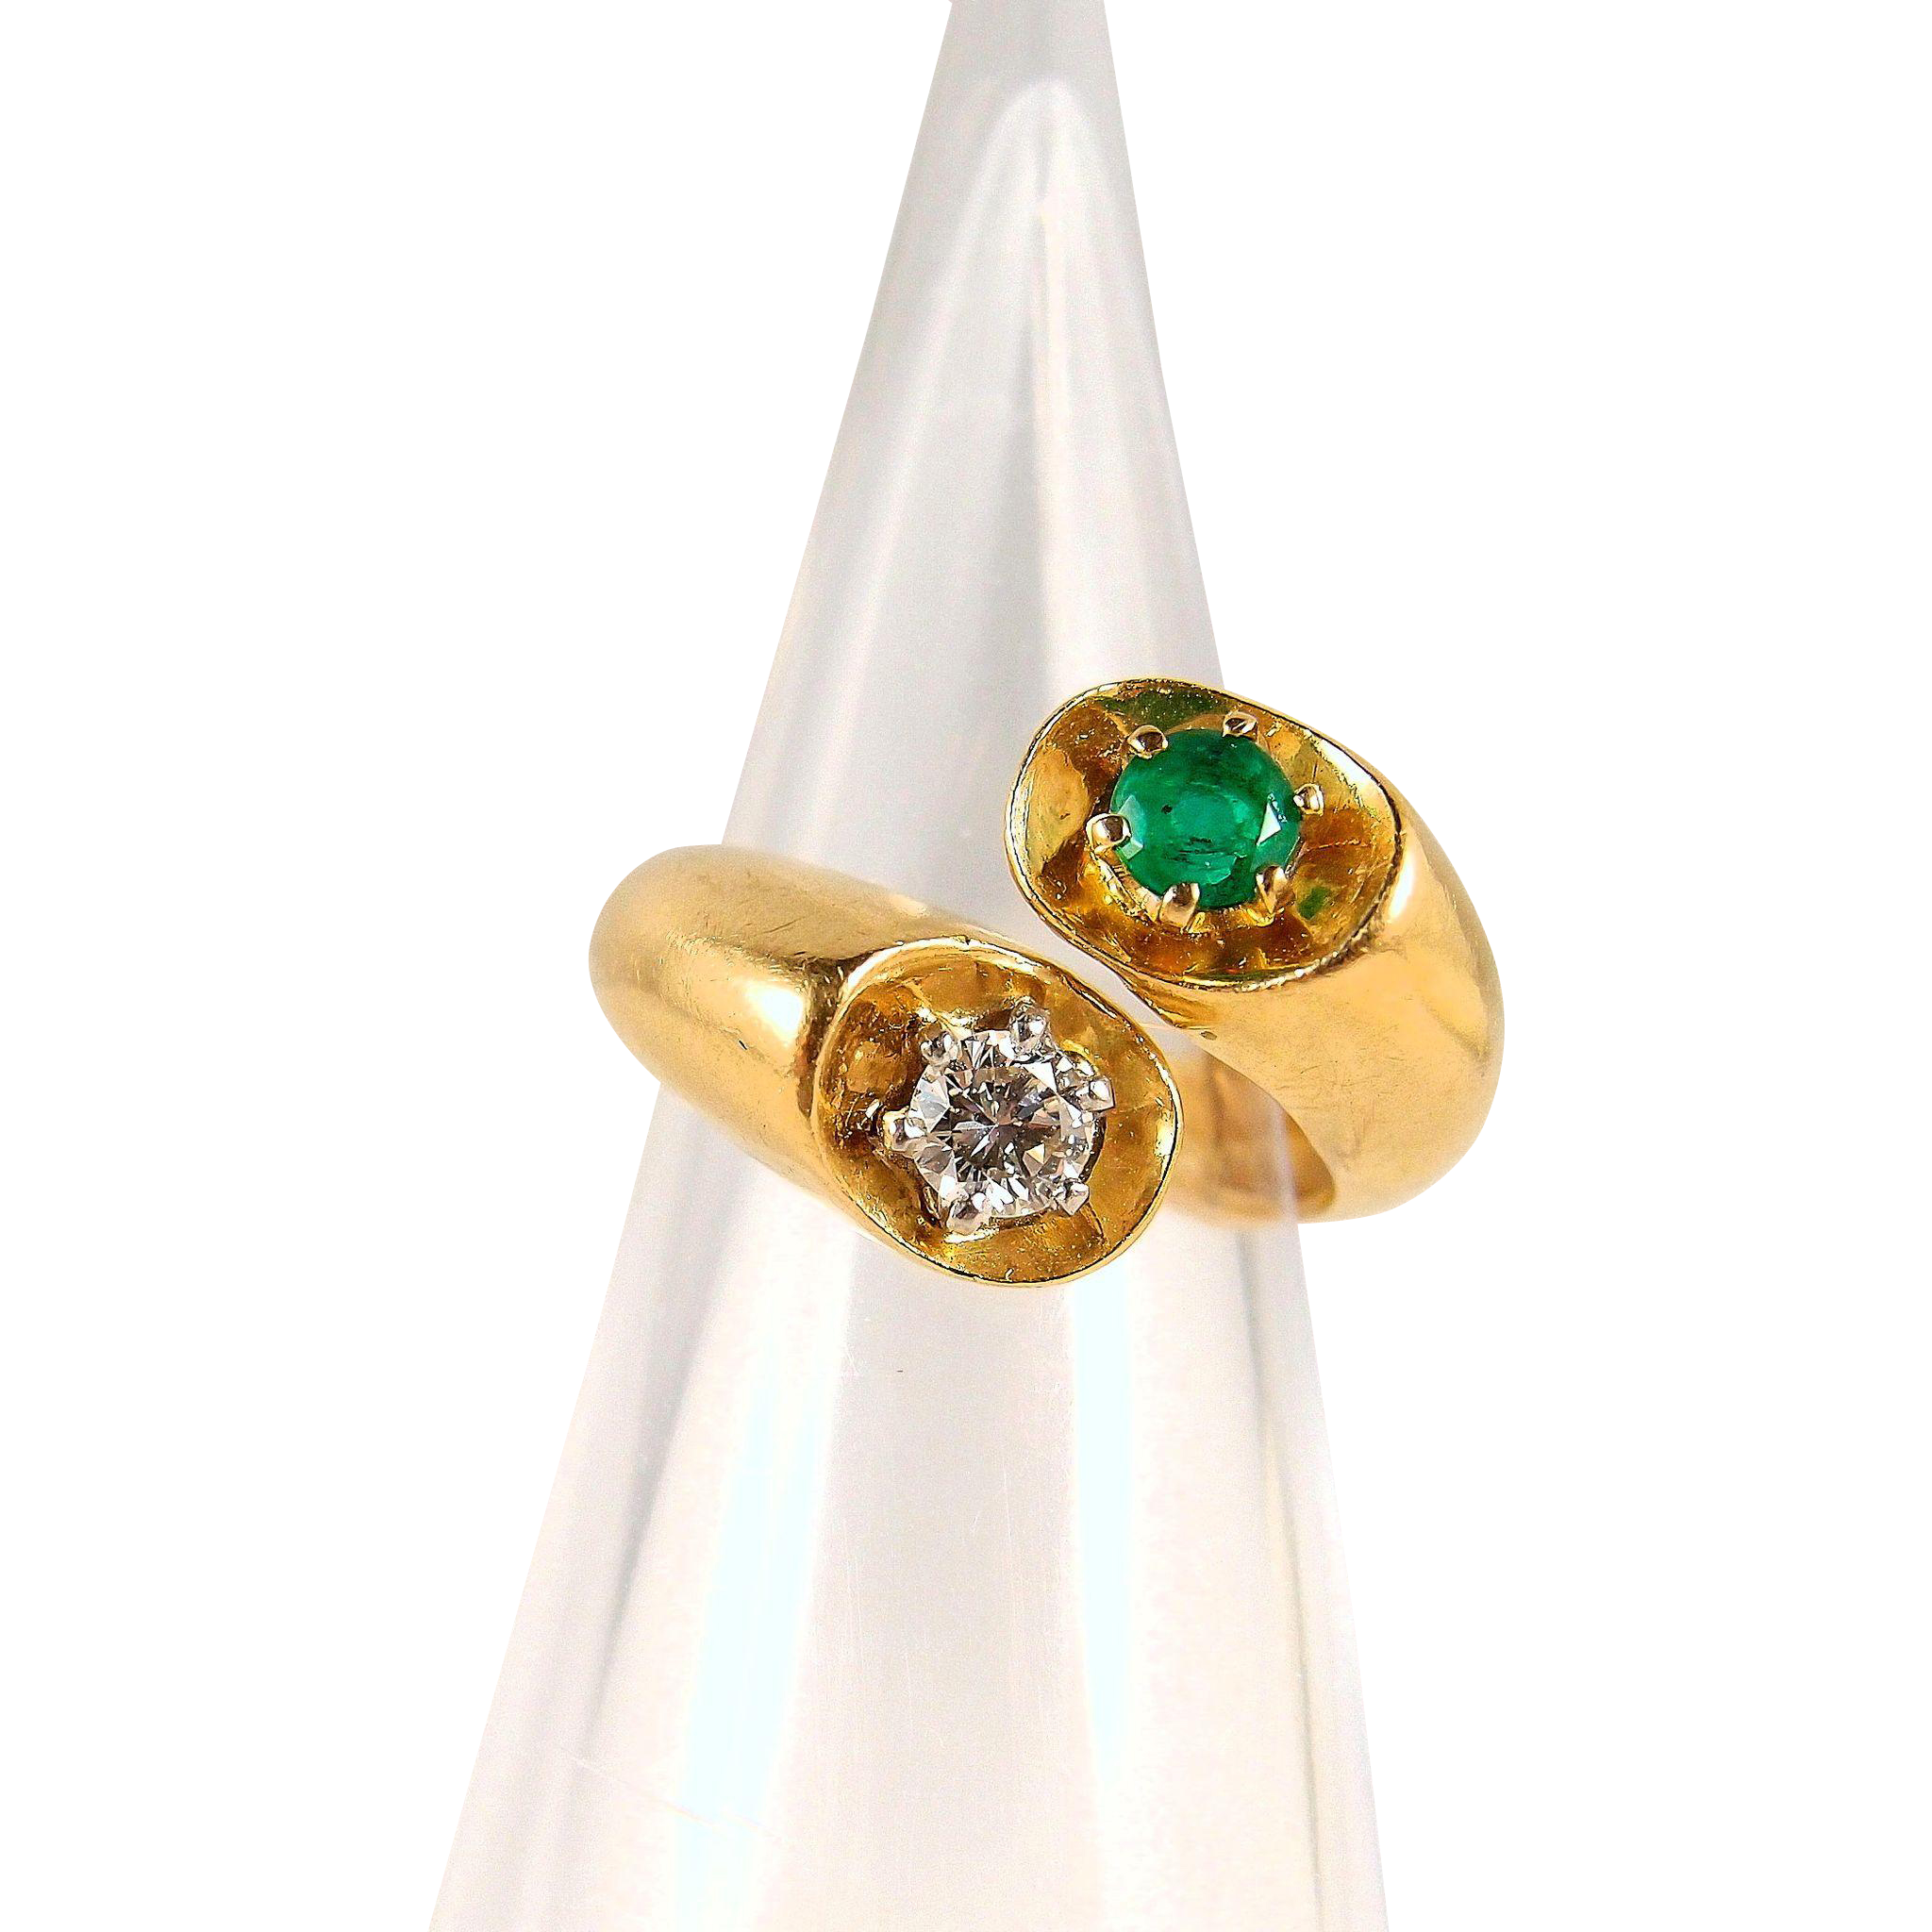 ring emeral delicate emerald jewelry rings raw products aquarian thoughts